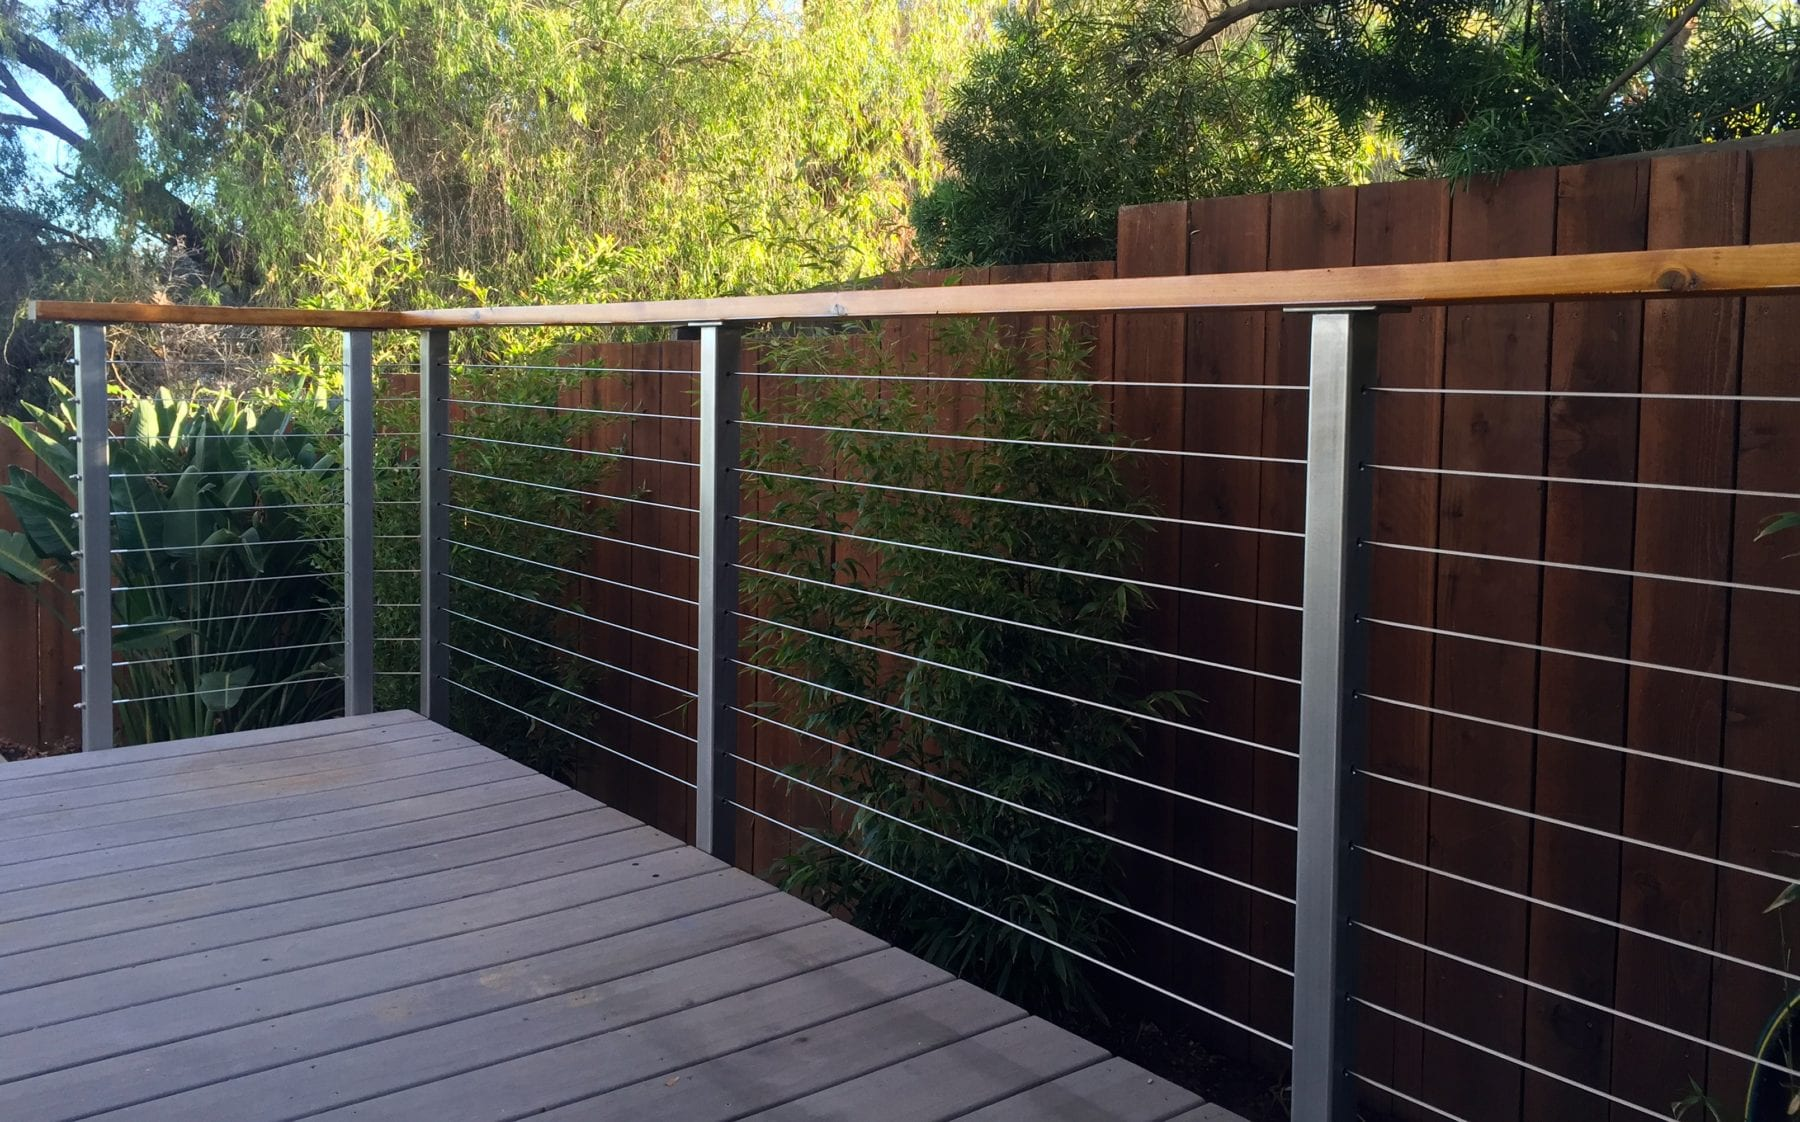 Stainless Steel Deck Railing Posts San Diego Cable Railings